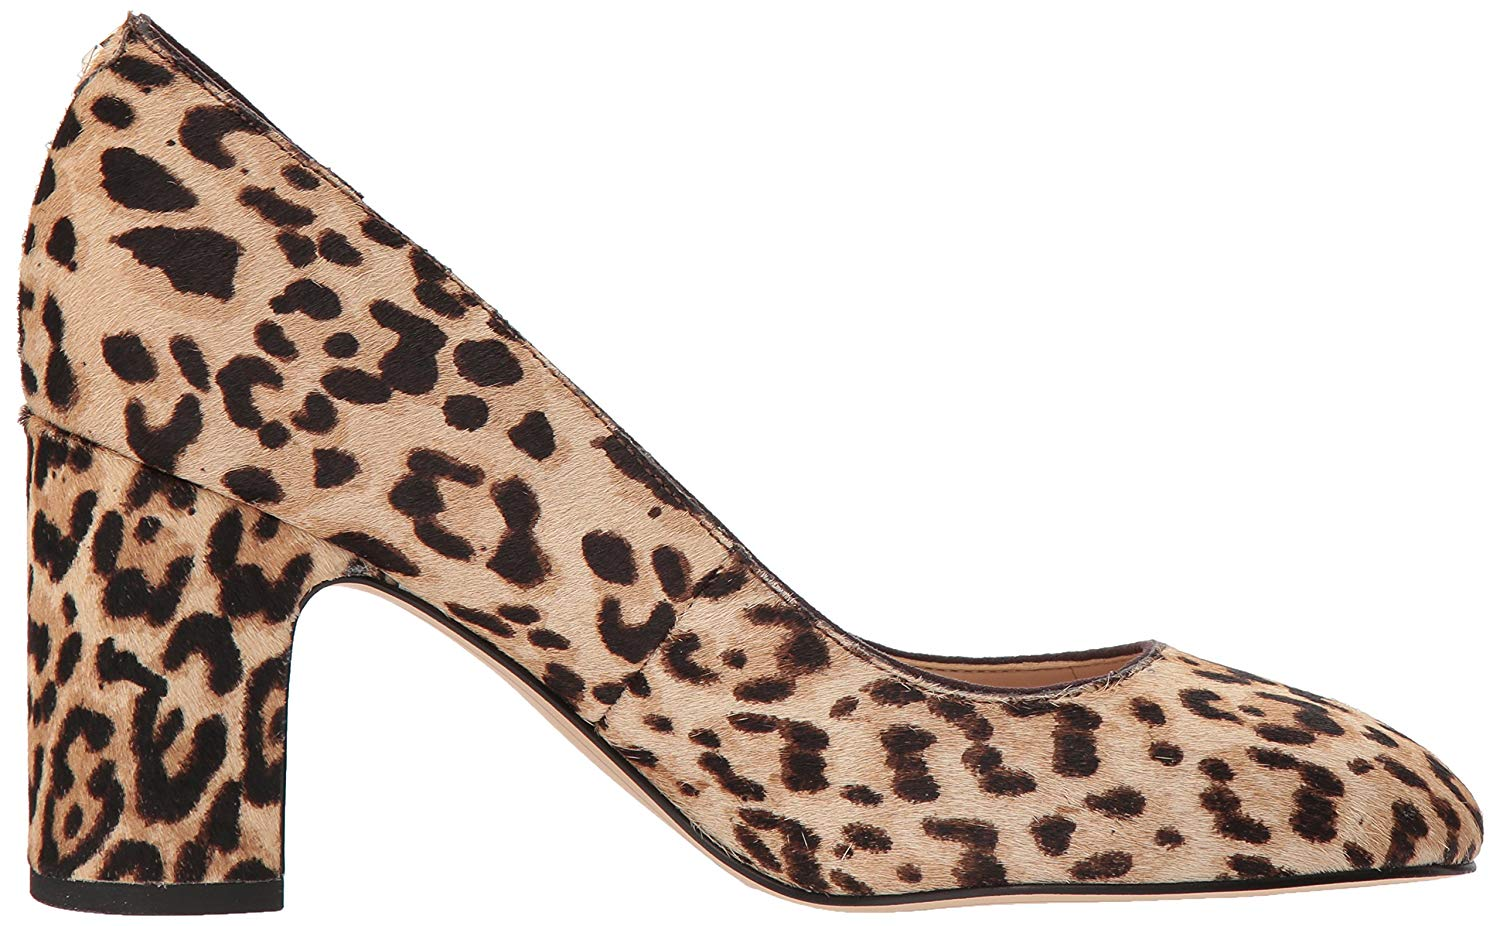 Sam Edelman Women's Junie Pump Economical, stylish, and eye-catching shoes